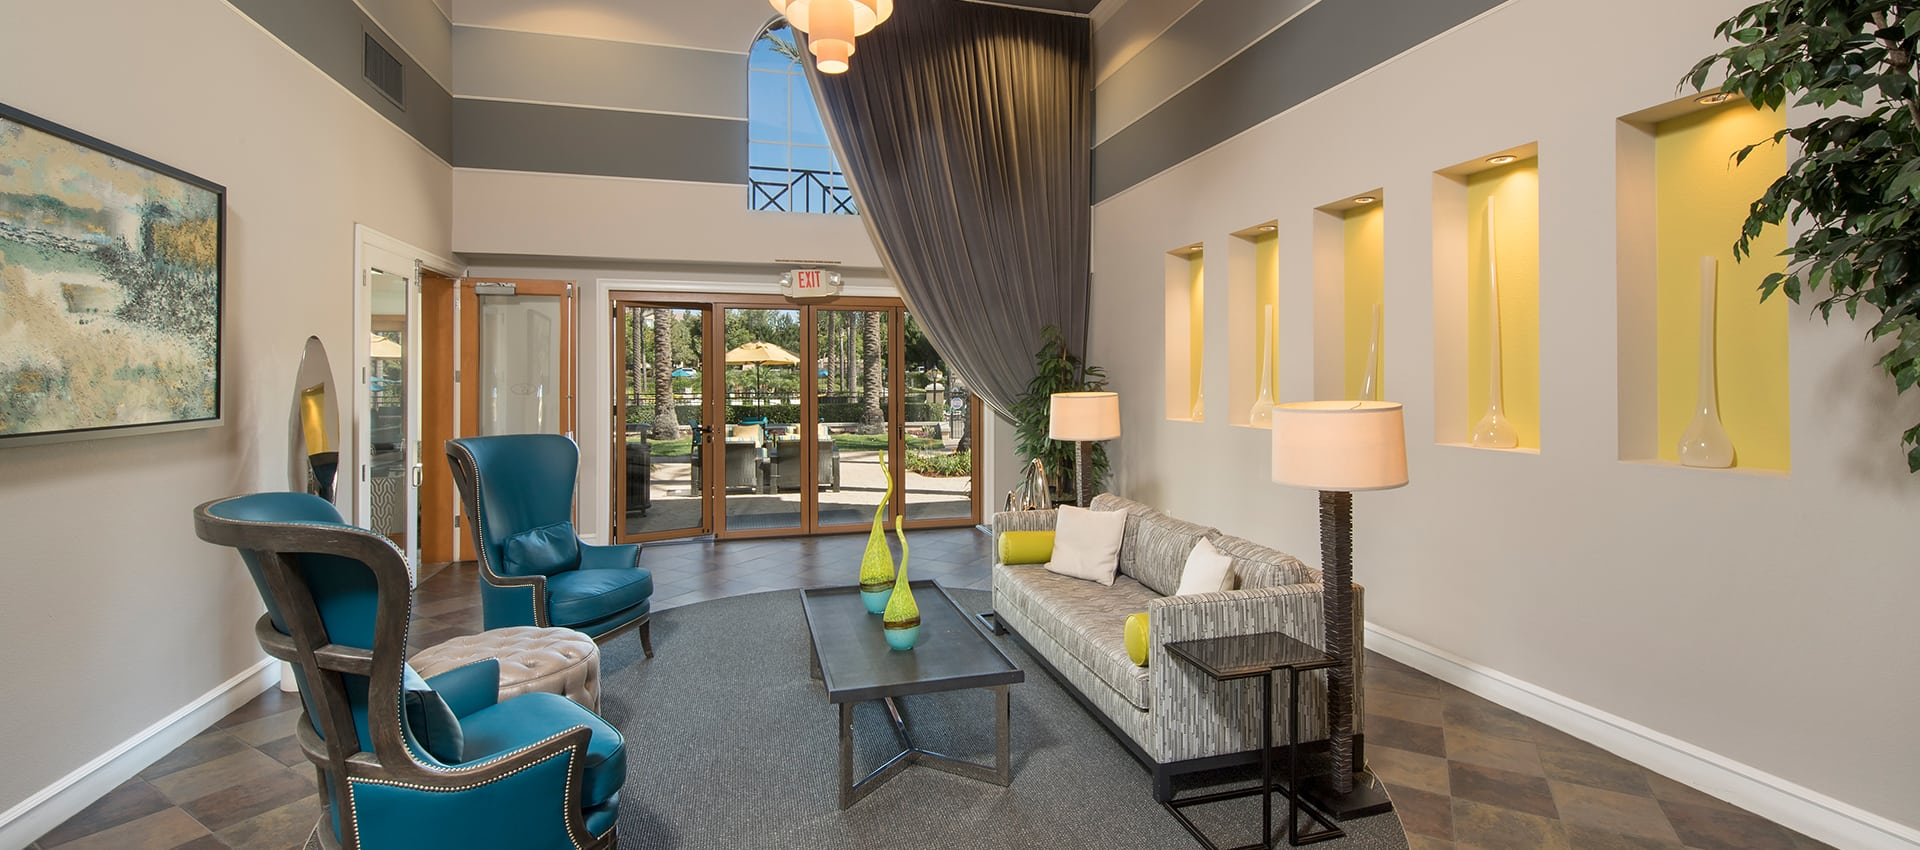 Seating Area At Clubhouse at Esplanade Apartment Homes in Riverside, CA